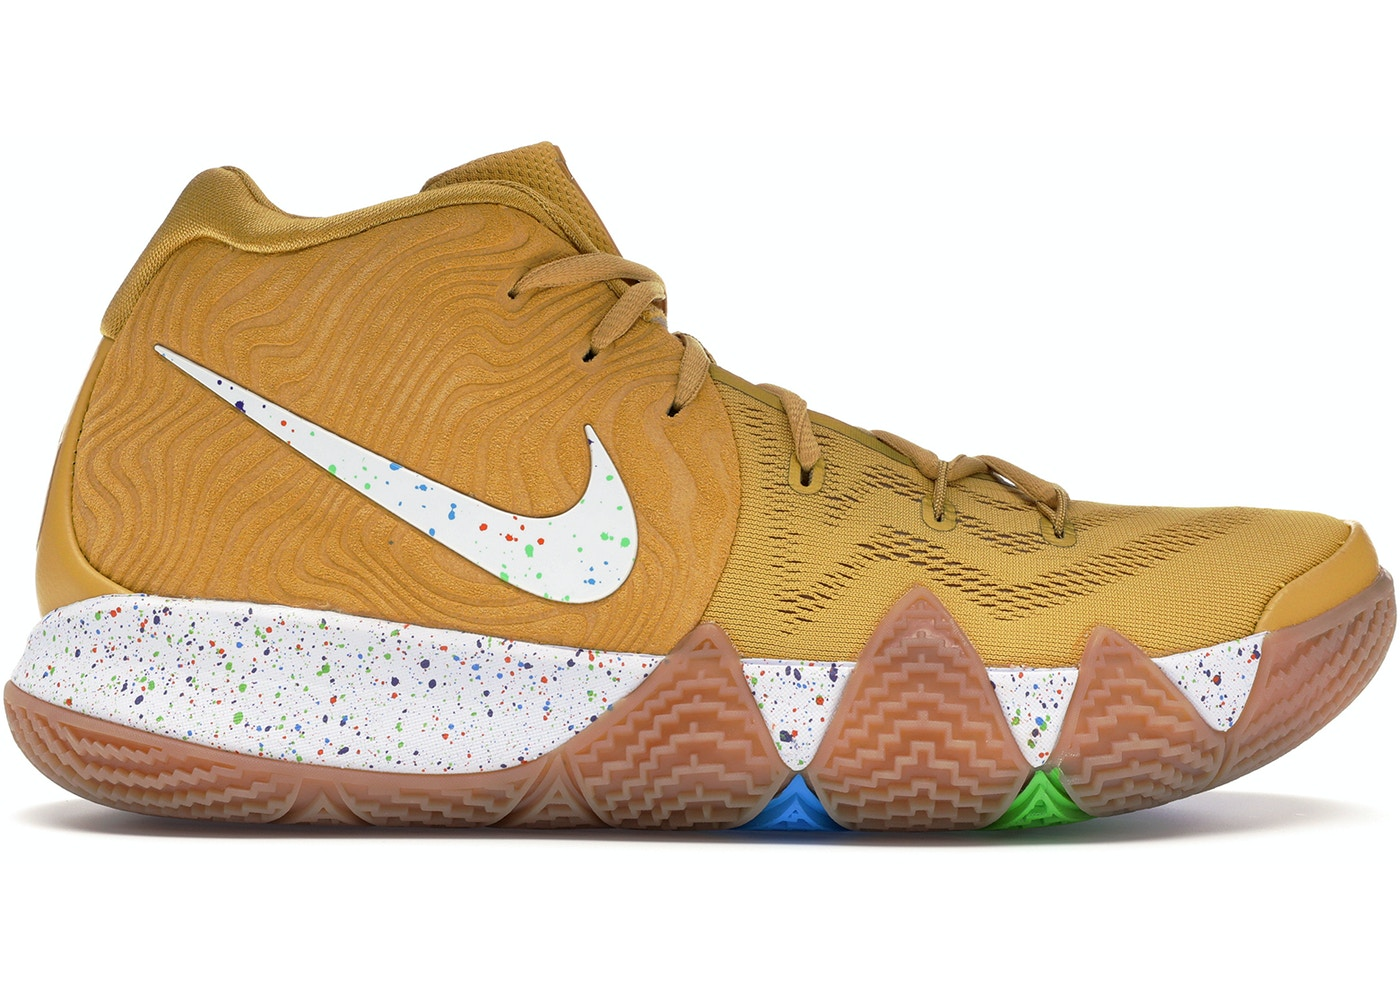 premium selection 0115b 99720 Kyrie 4 Cinnamon Toast Crunch